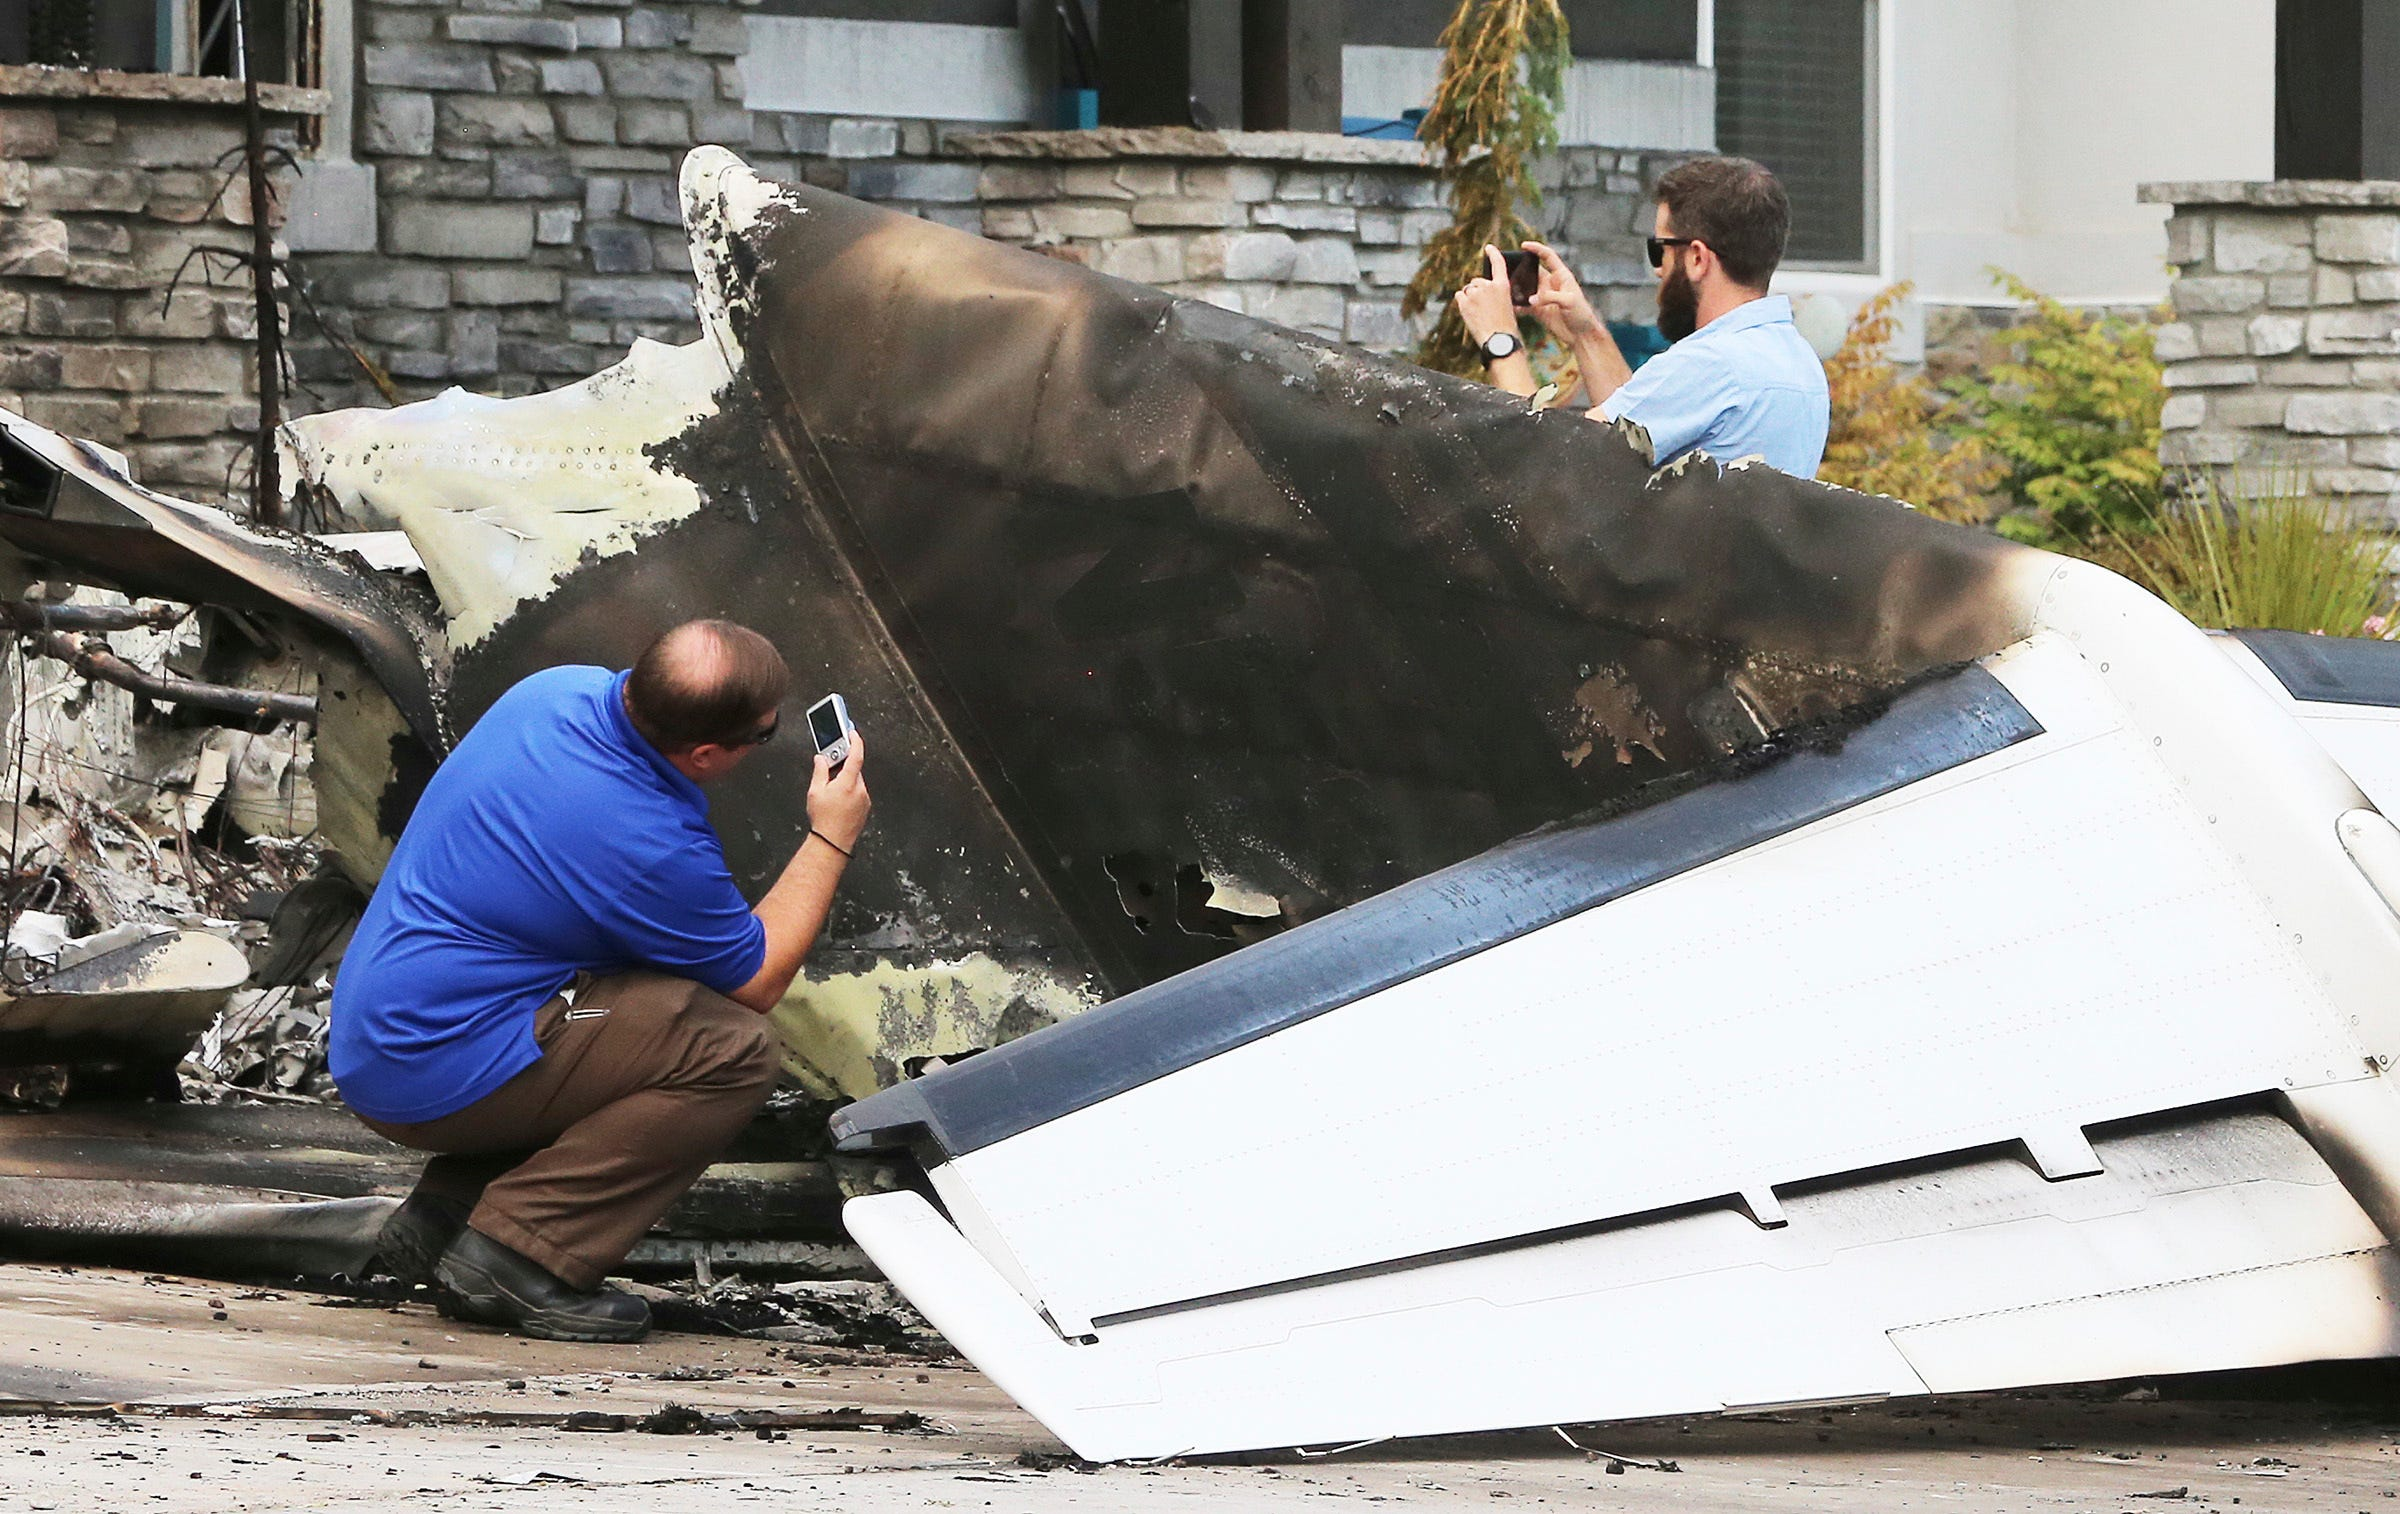 Pilot crashes plane into his own home in Utah with wife and boy inside, police say